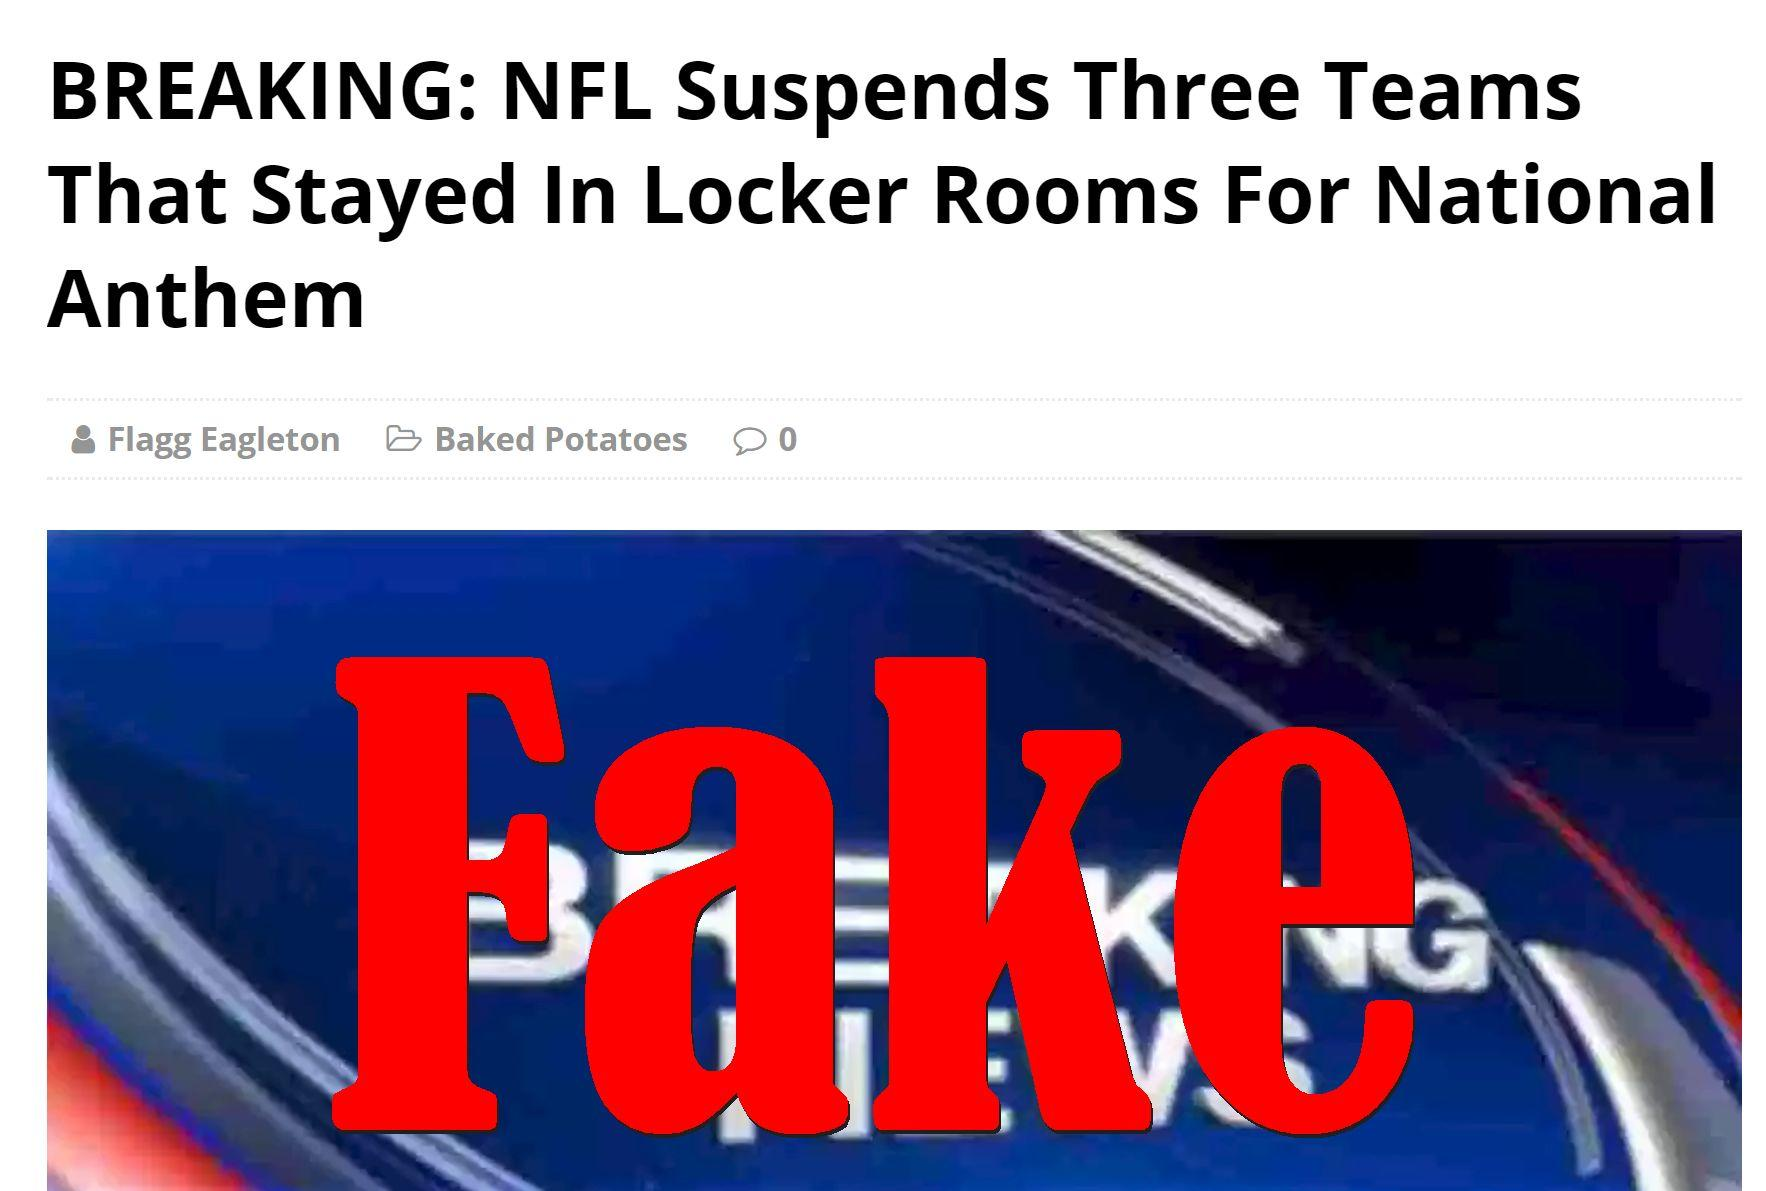 Fake News: NFL Did NOT Suspend Three Teams That Stayed In Locker Rooms For National Anthem